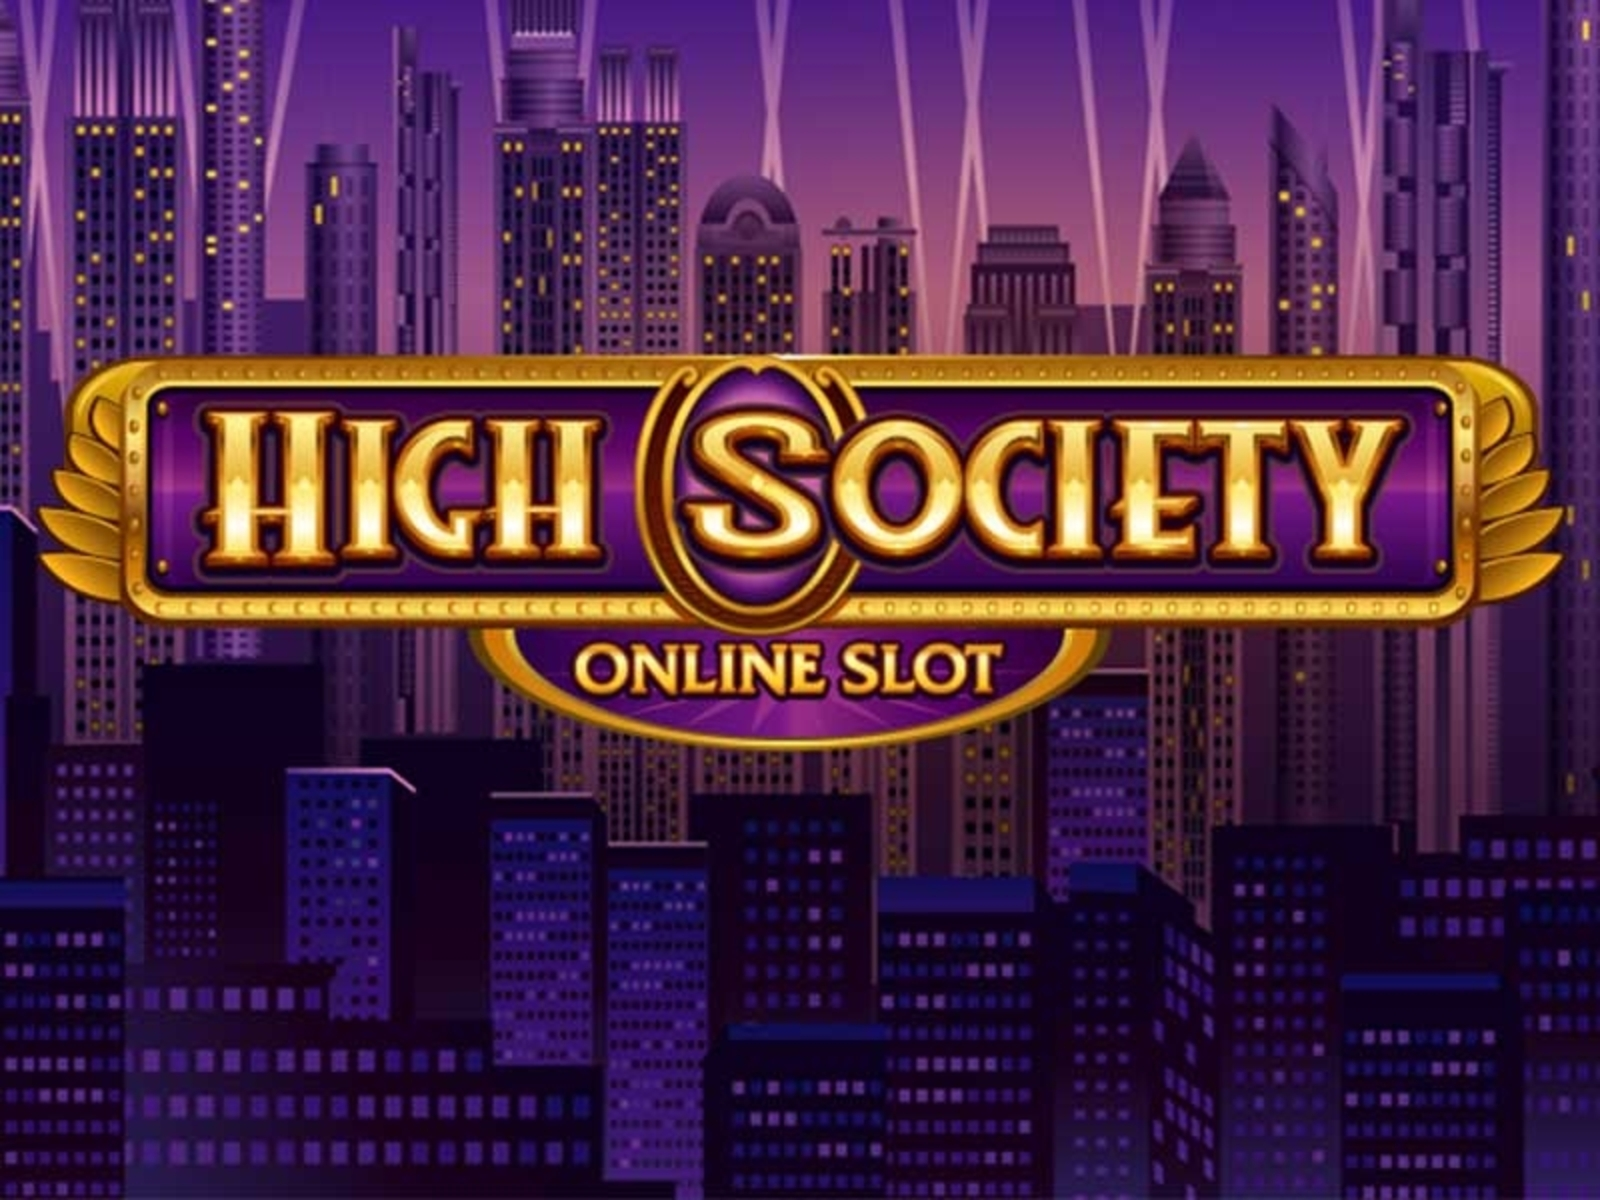 The High Society Online Slot Demo Game by Microgaming